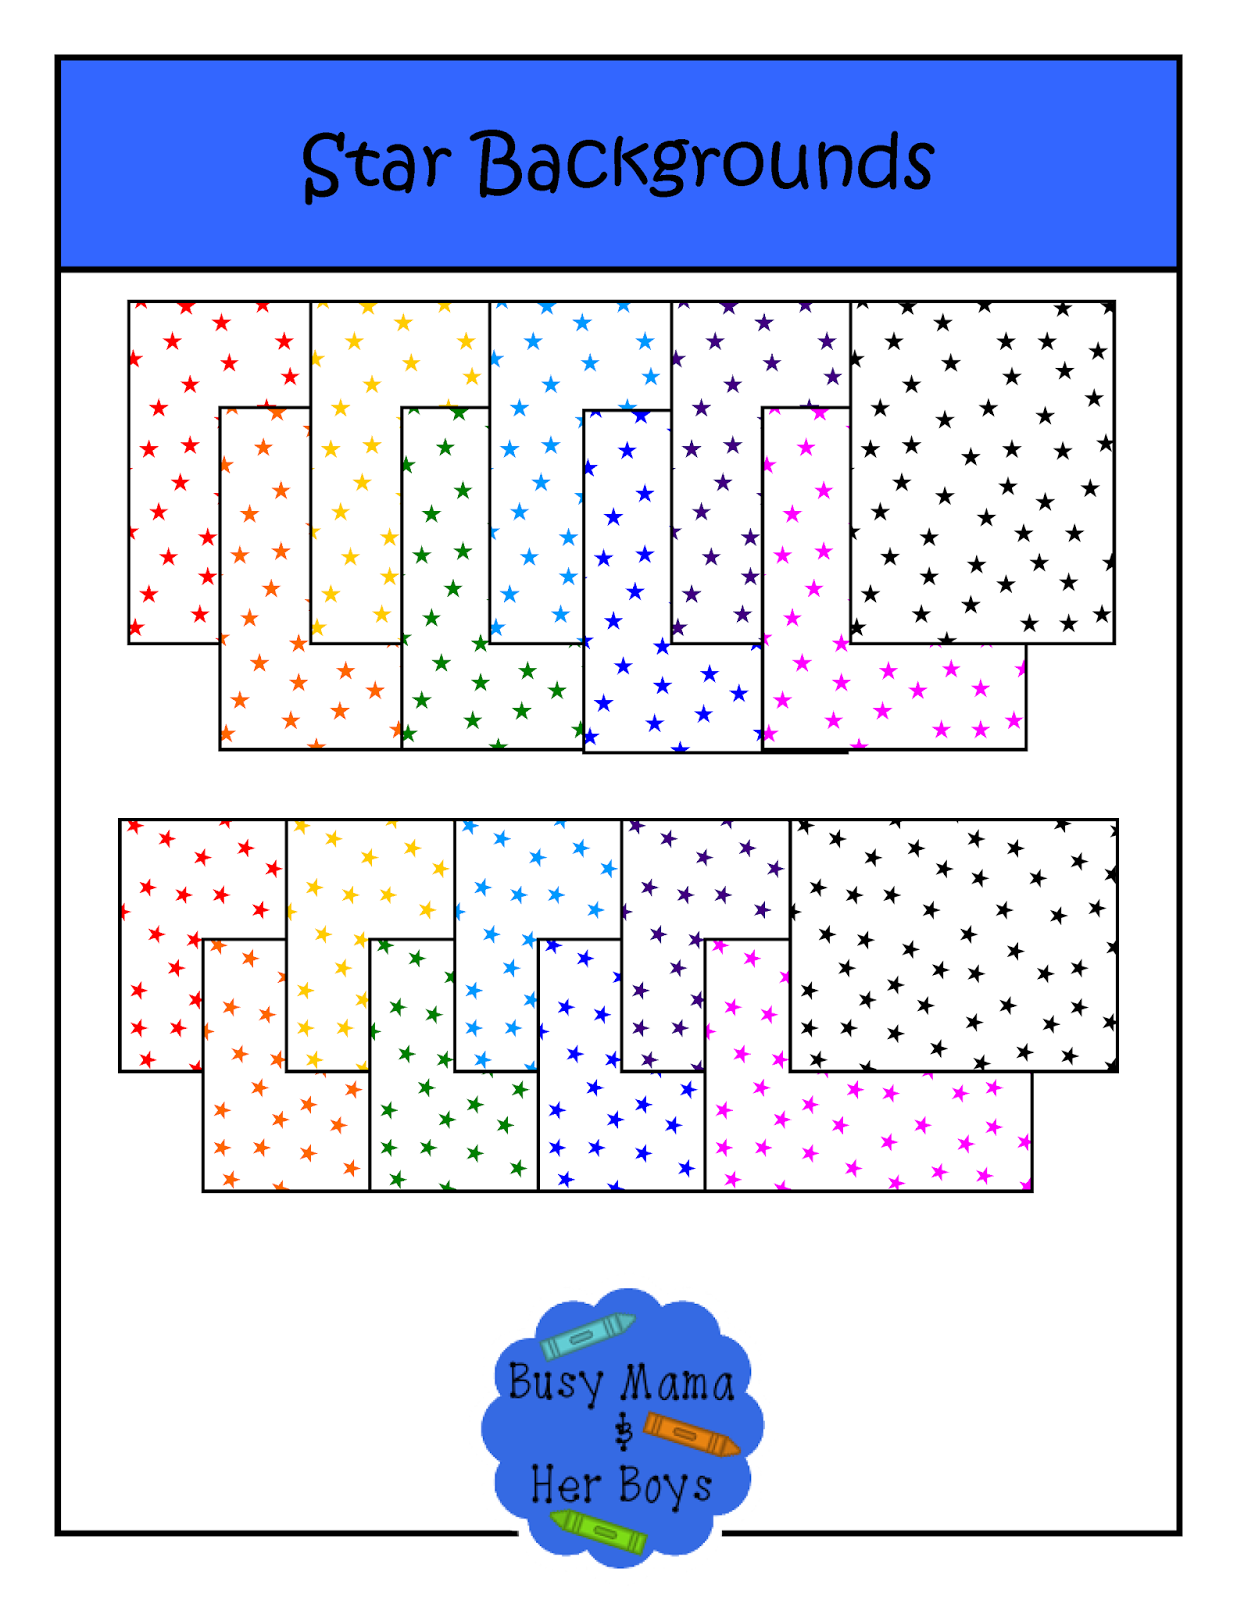 http://www.teacherspayteachers.com/Product/Star-Backgrounds-1390225